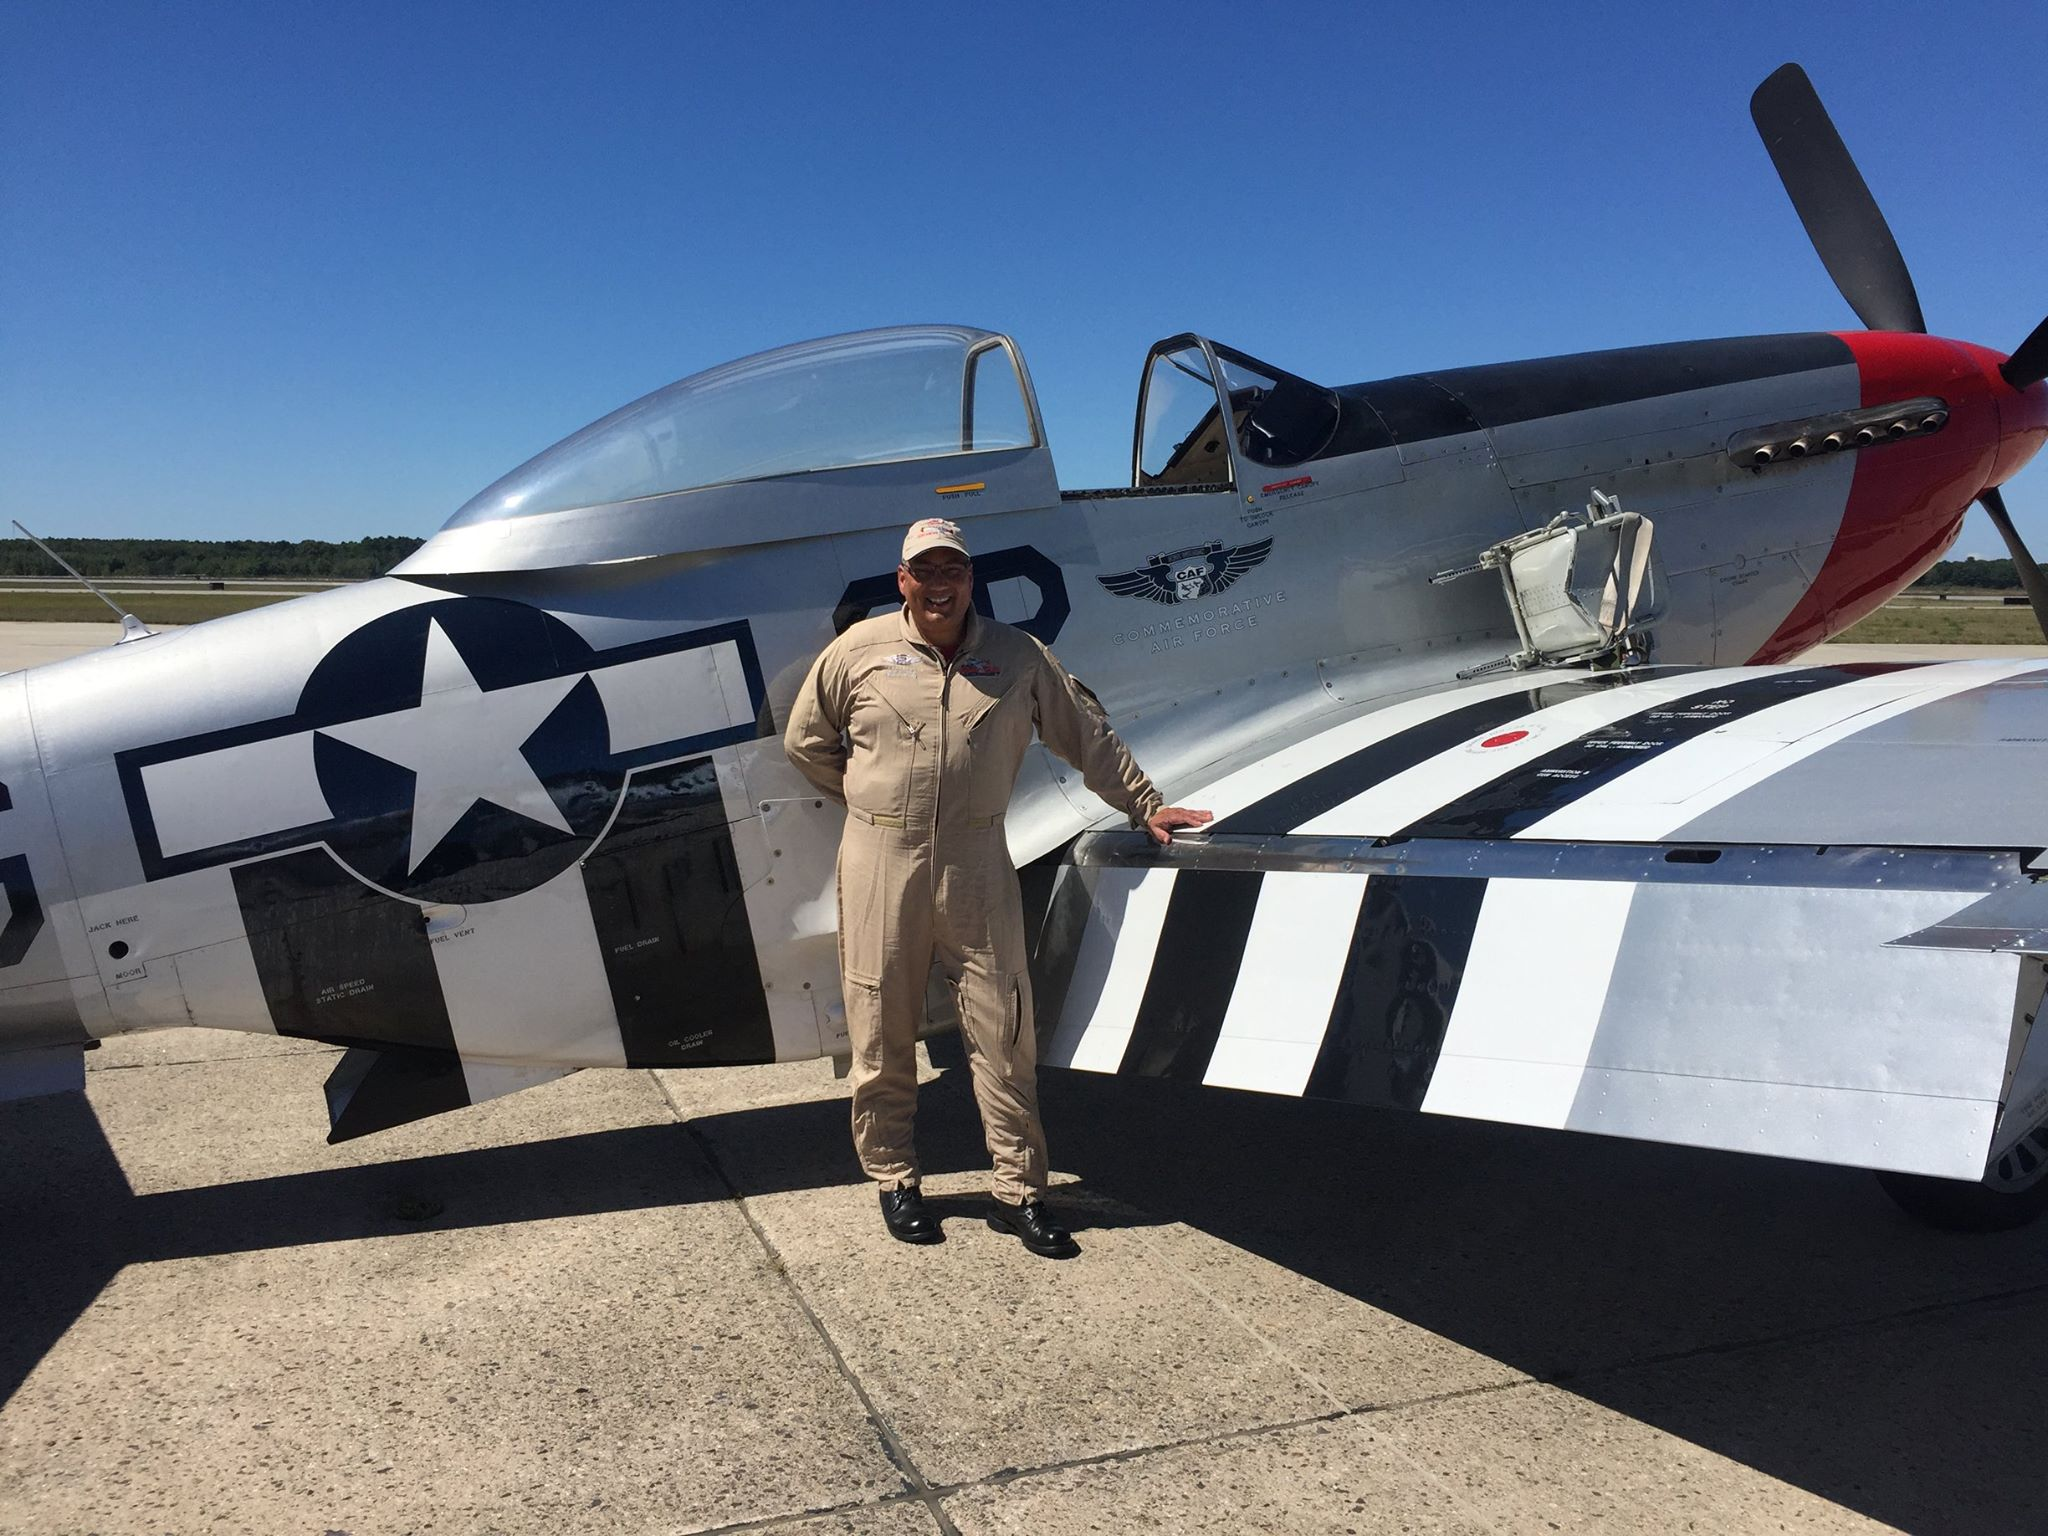 Mark Welborn Of Wiscasset Won A Raffle To Take Flight In The Mustang With About Half Hour Air Time Above Brunswick Executive Airport